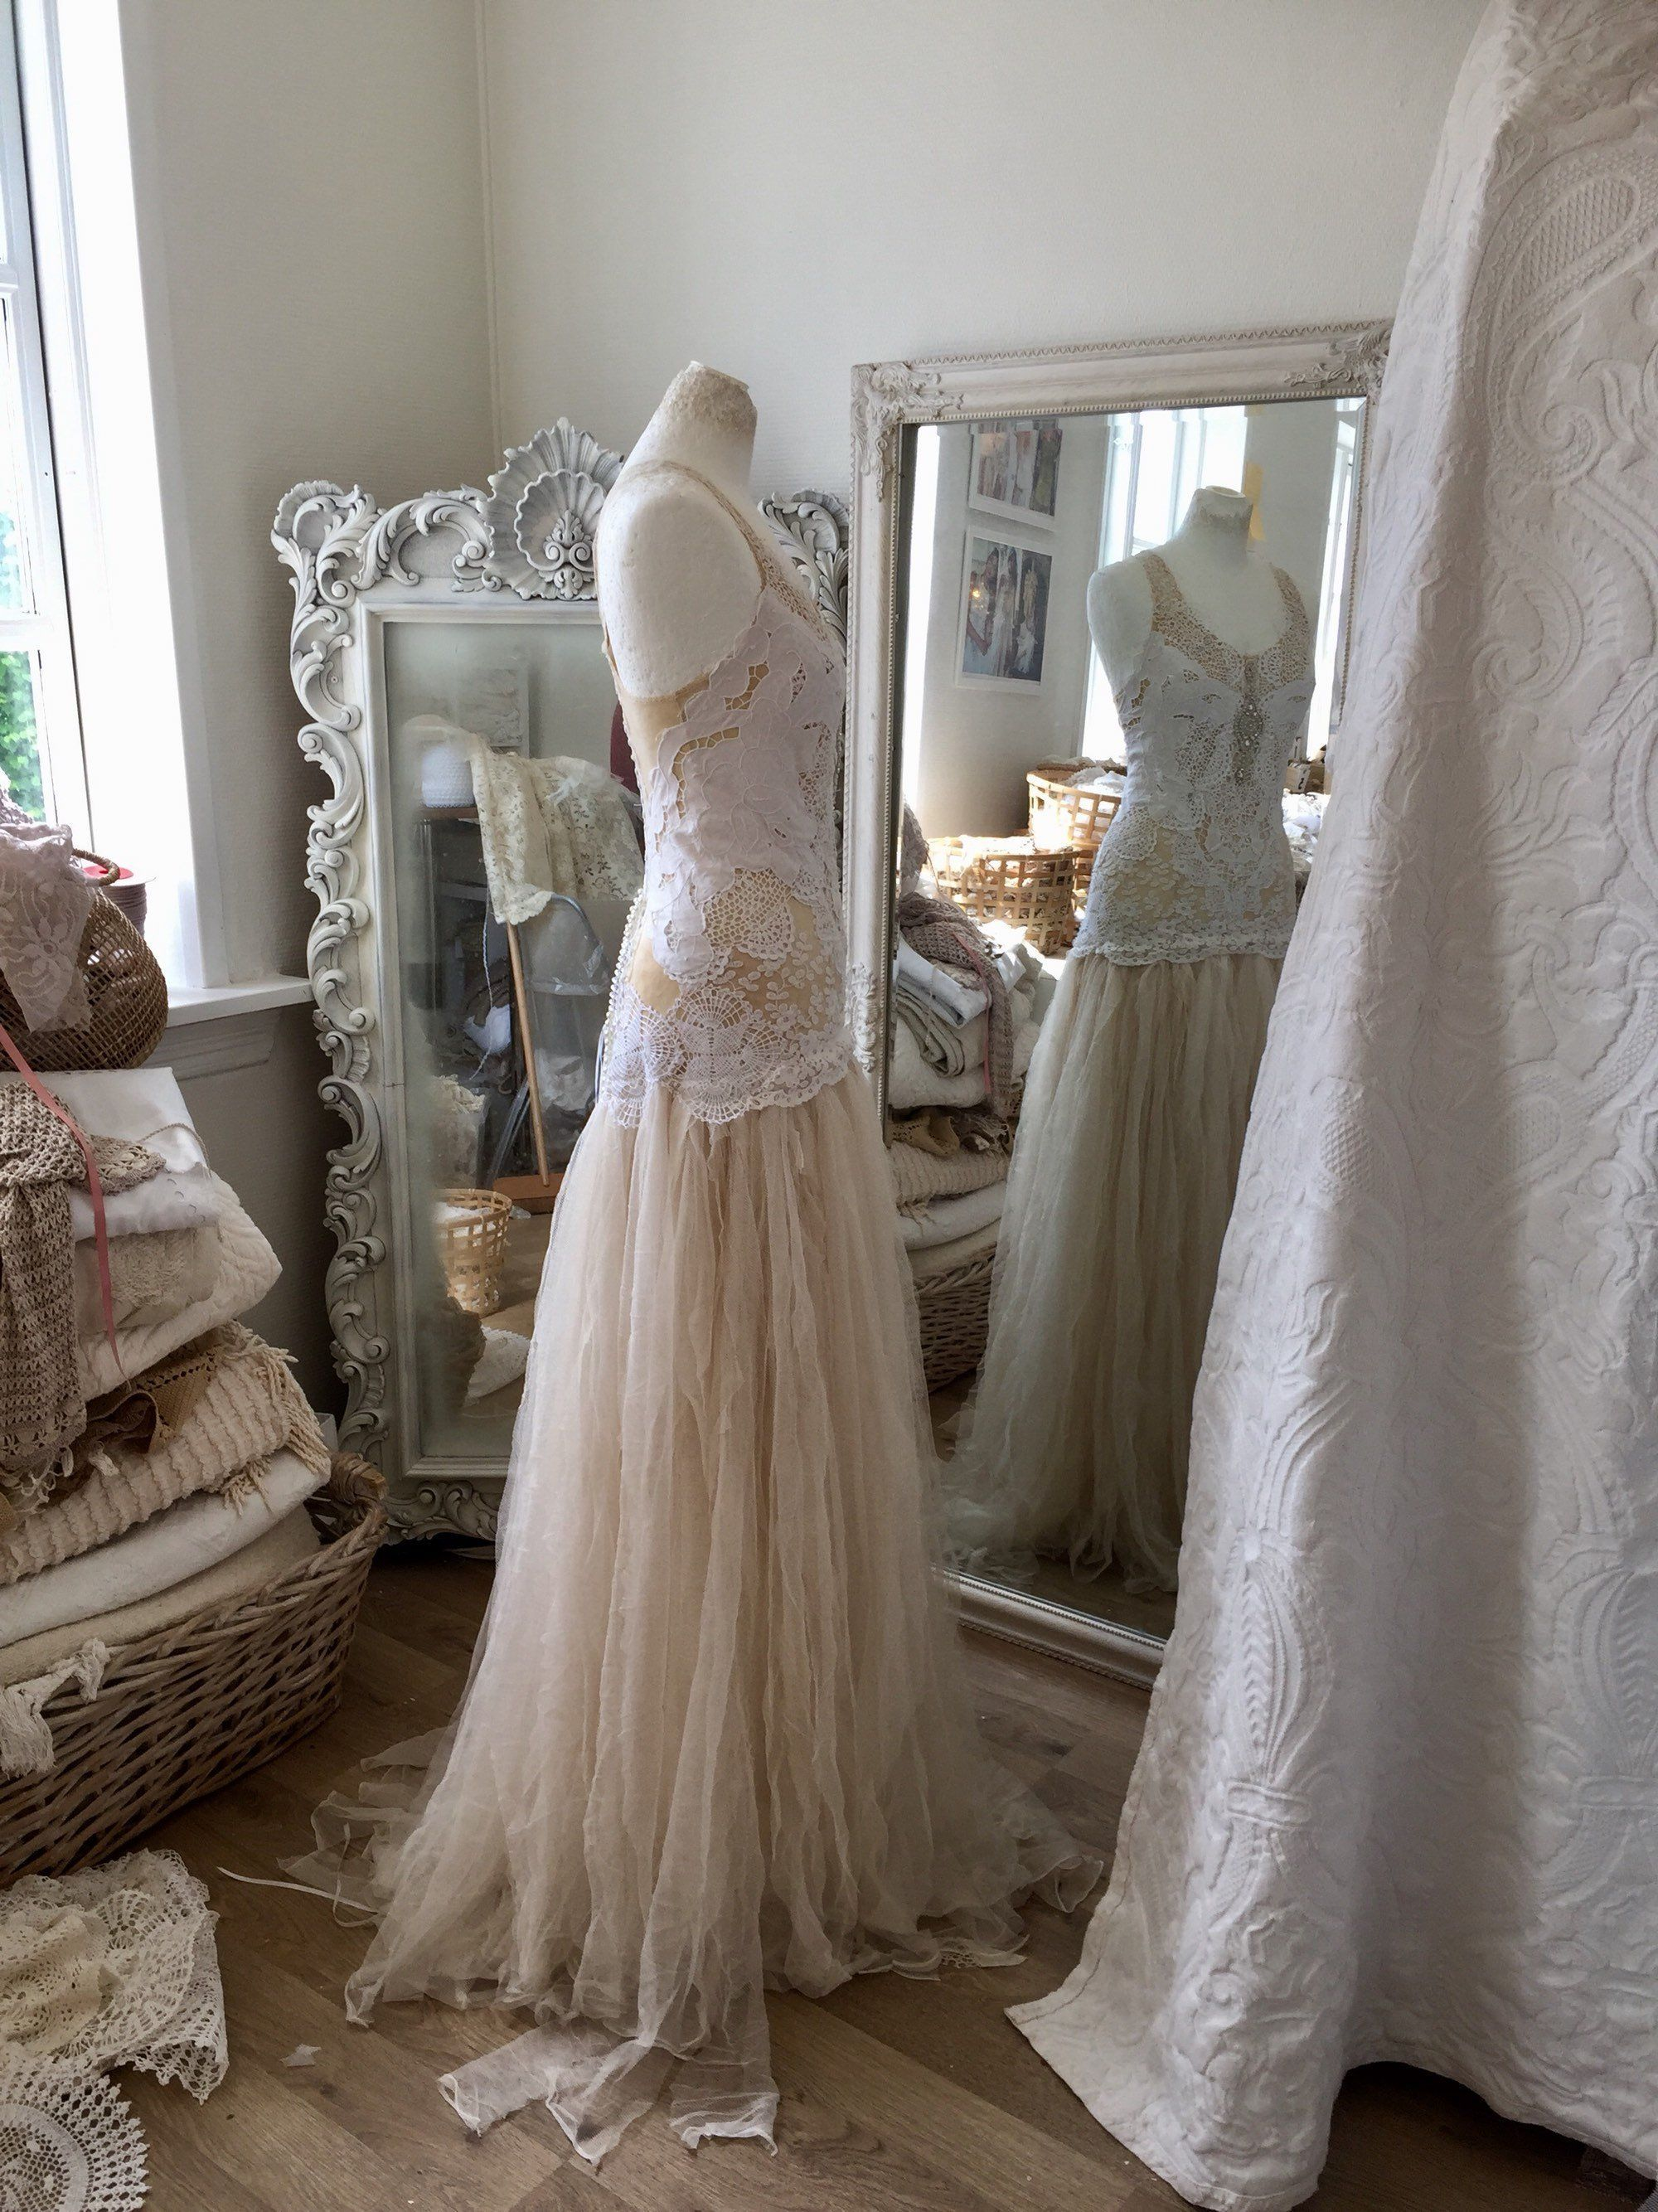 Bridal gown wedding dress in white and delicate tea stained colour